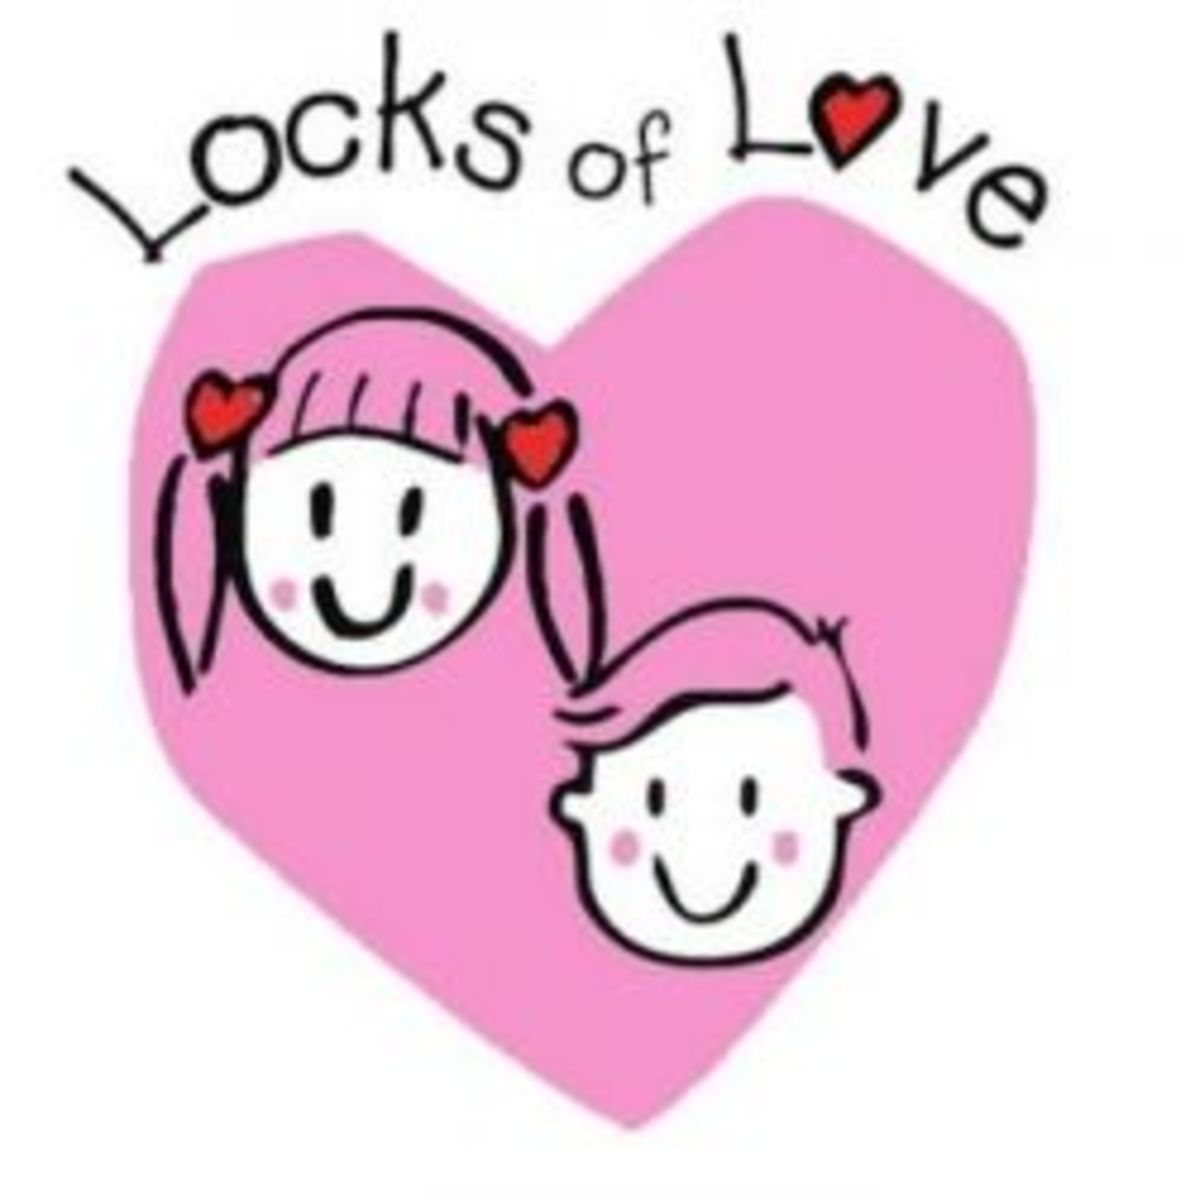 Locks of Love hair donation program